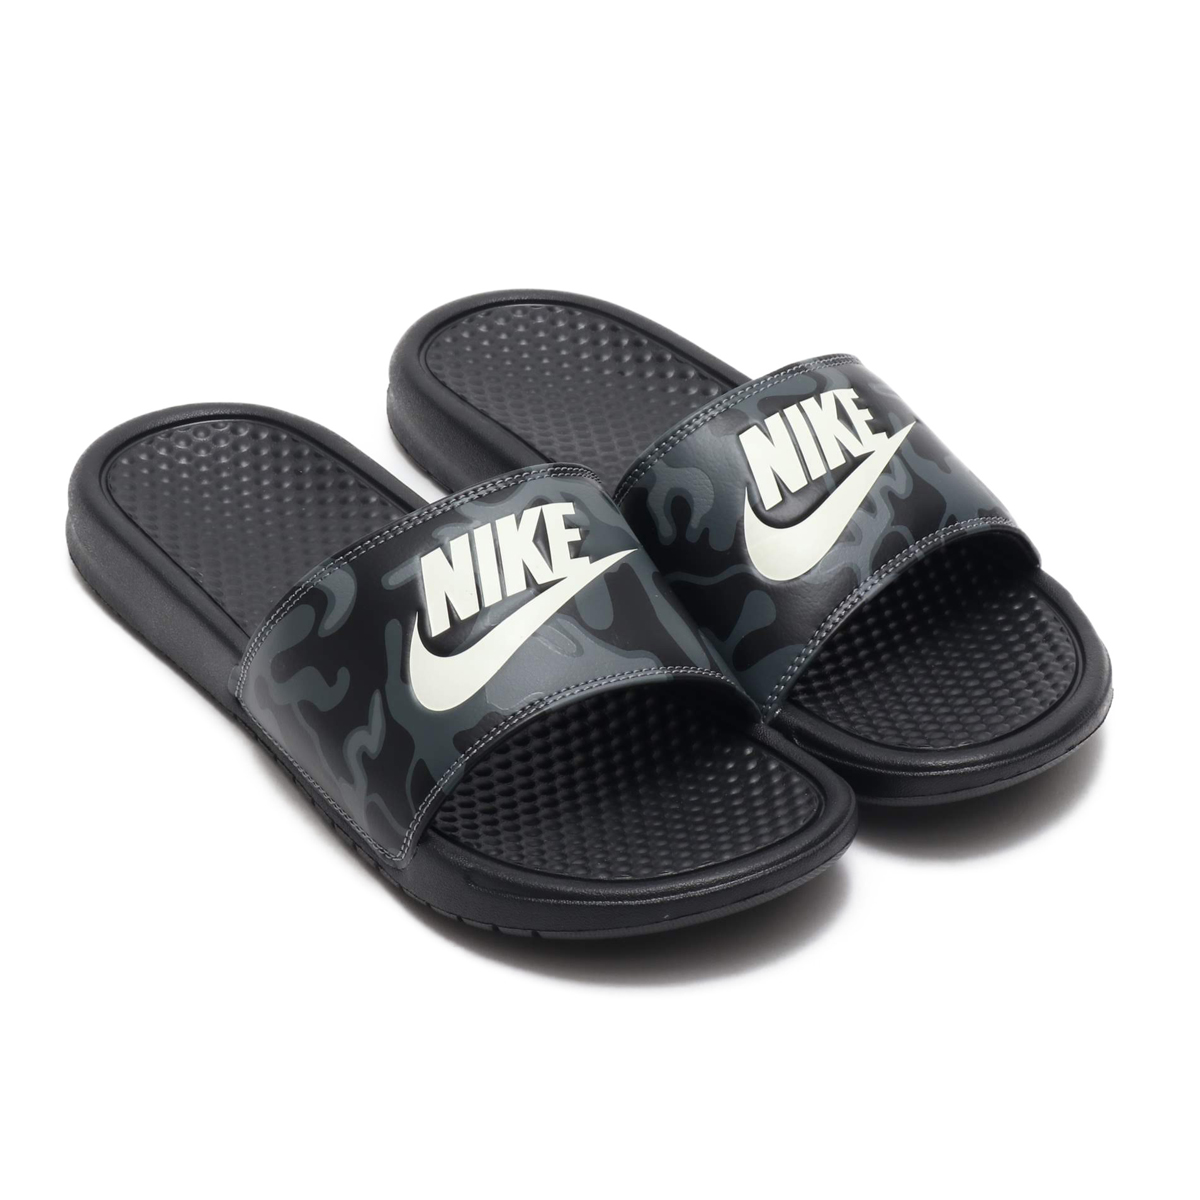 27b26613826b0e NIKE BENASSI JDI PRINT (ナイキベナッシ JDI print) BLACK SUMMIT WHITE 18FA-S